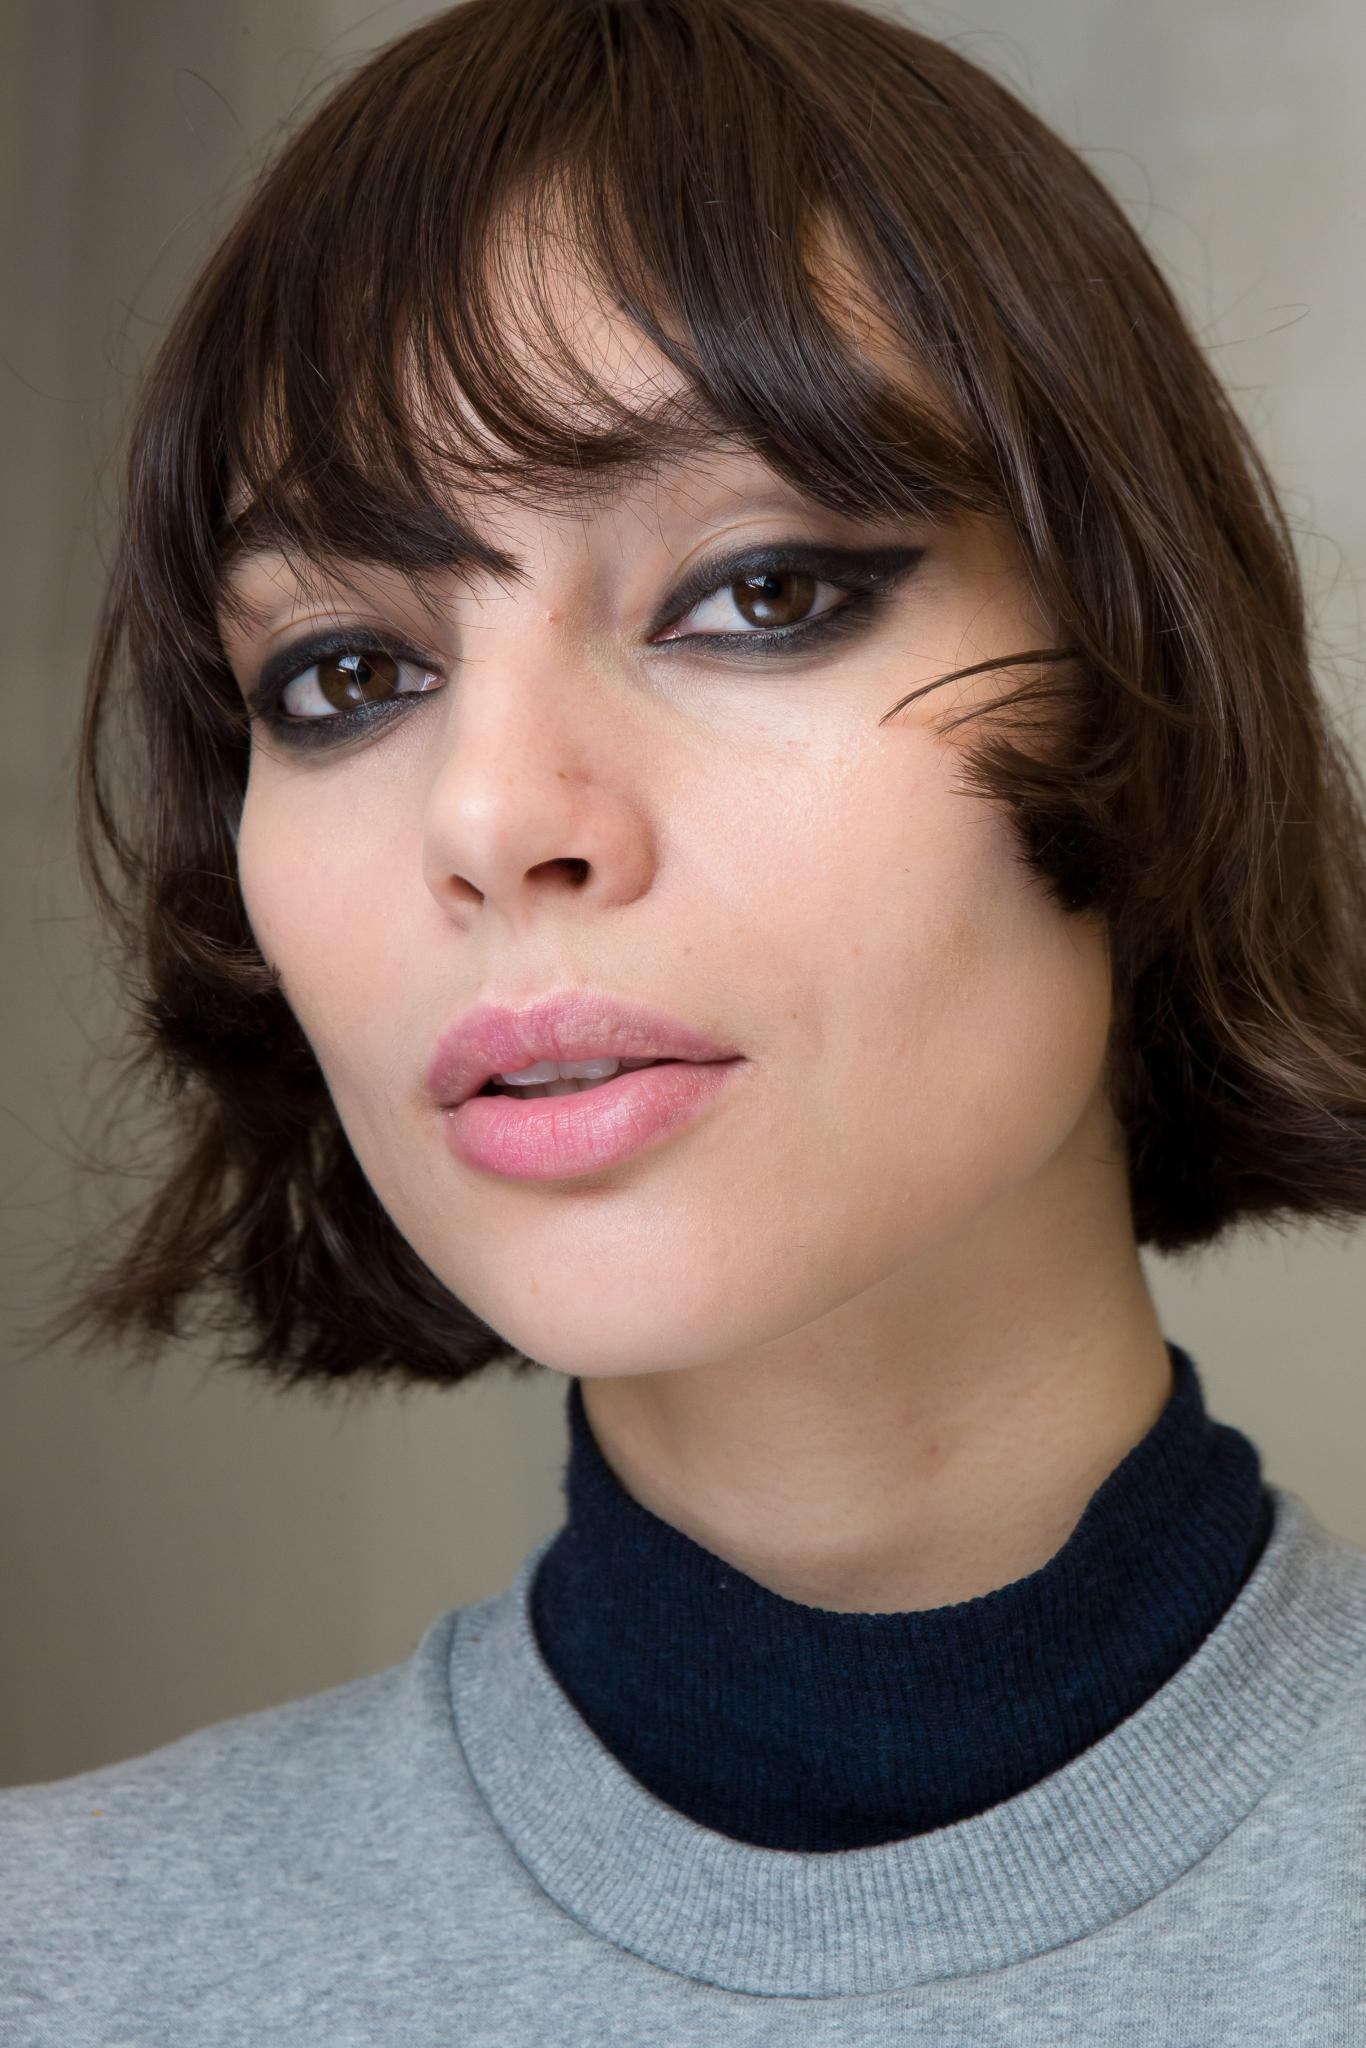 new hairstyles for spring like a piecey bob